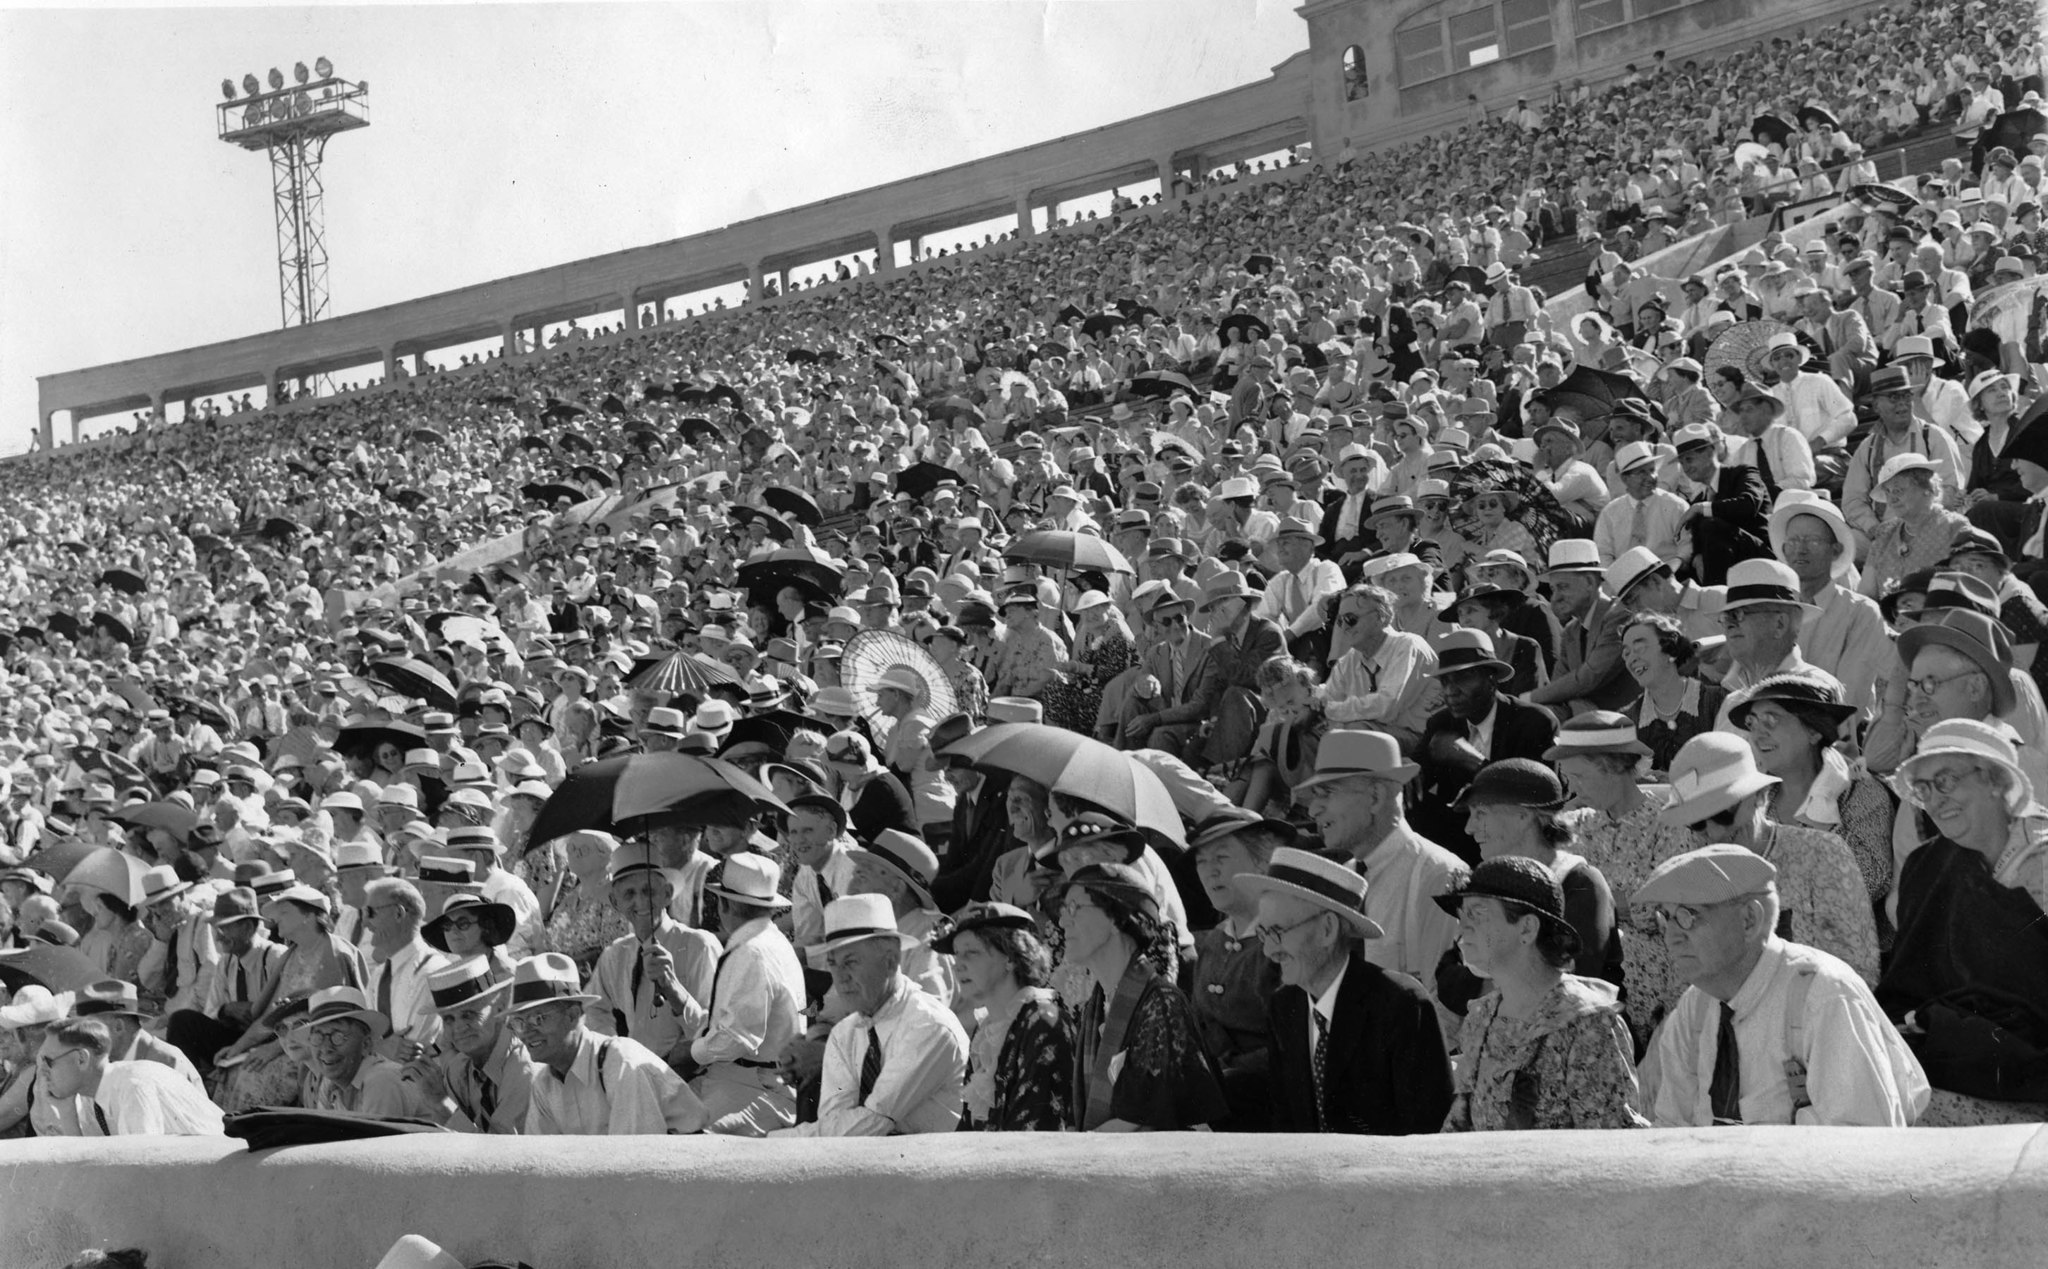 July 5, 1936: Part of crowd of 18,000 at the Rose Bowl to hear Dr. Francis Townsend speark about his